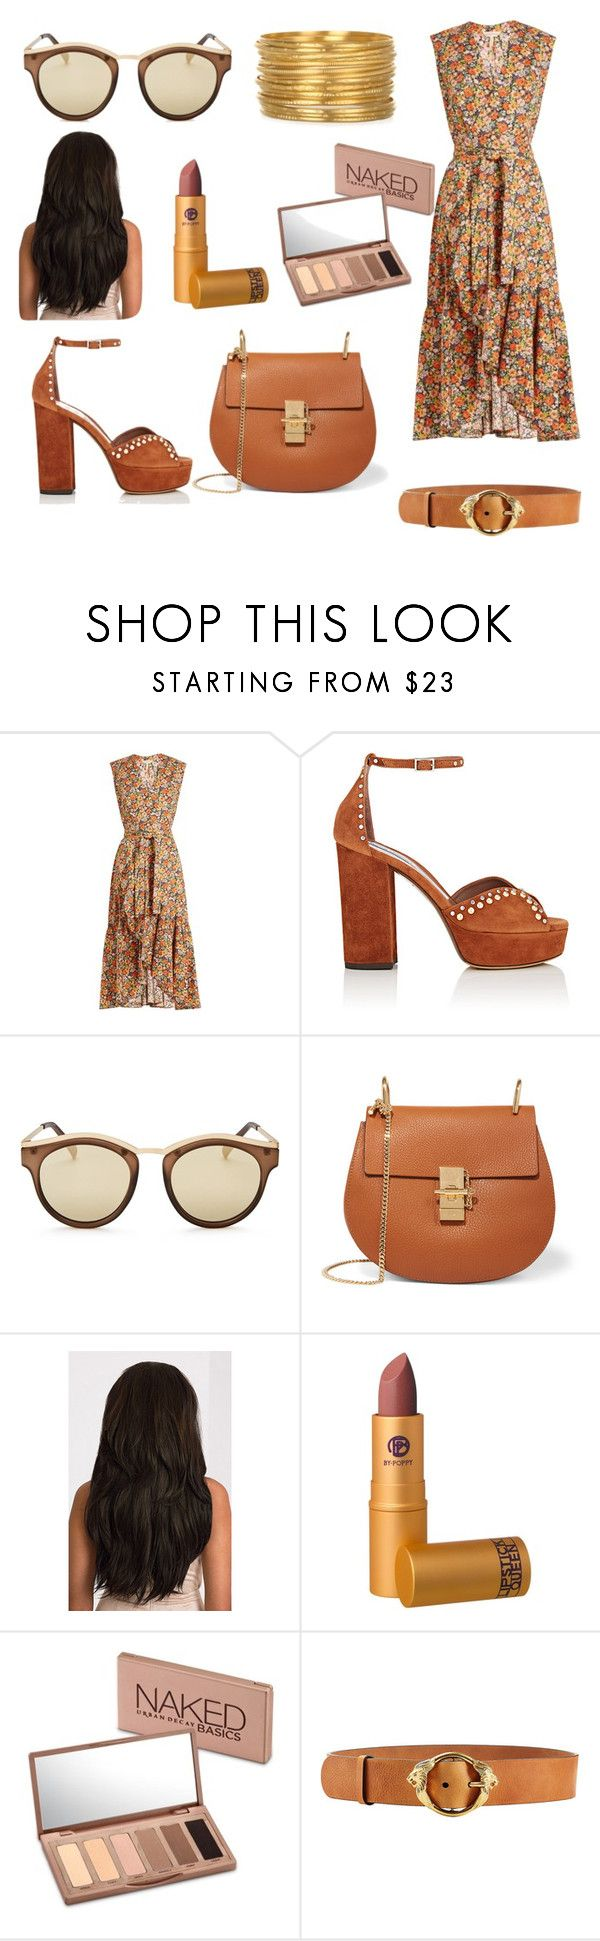 """""""Untitled #86"""" by mihaelamihu ❤ liked on Polyvore featuring Rebecca Taylor, Tabitha Simmons, Le Specs, Chloé, Lipstick Queen, Urban Decay and Roberto Cavalli"""